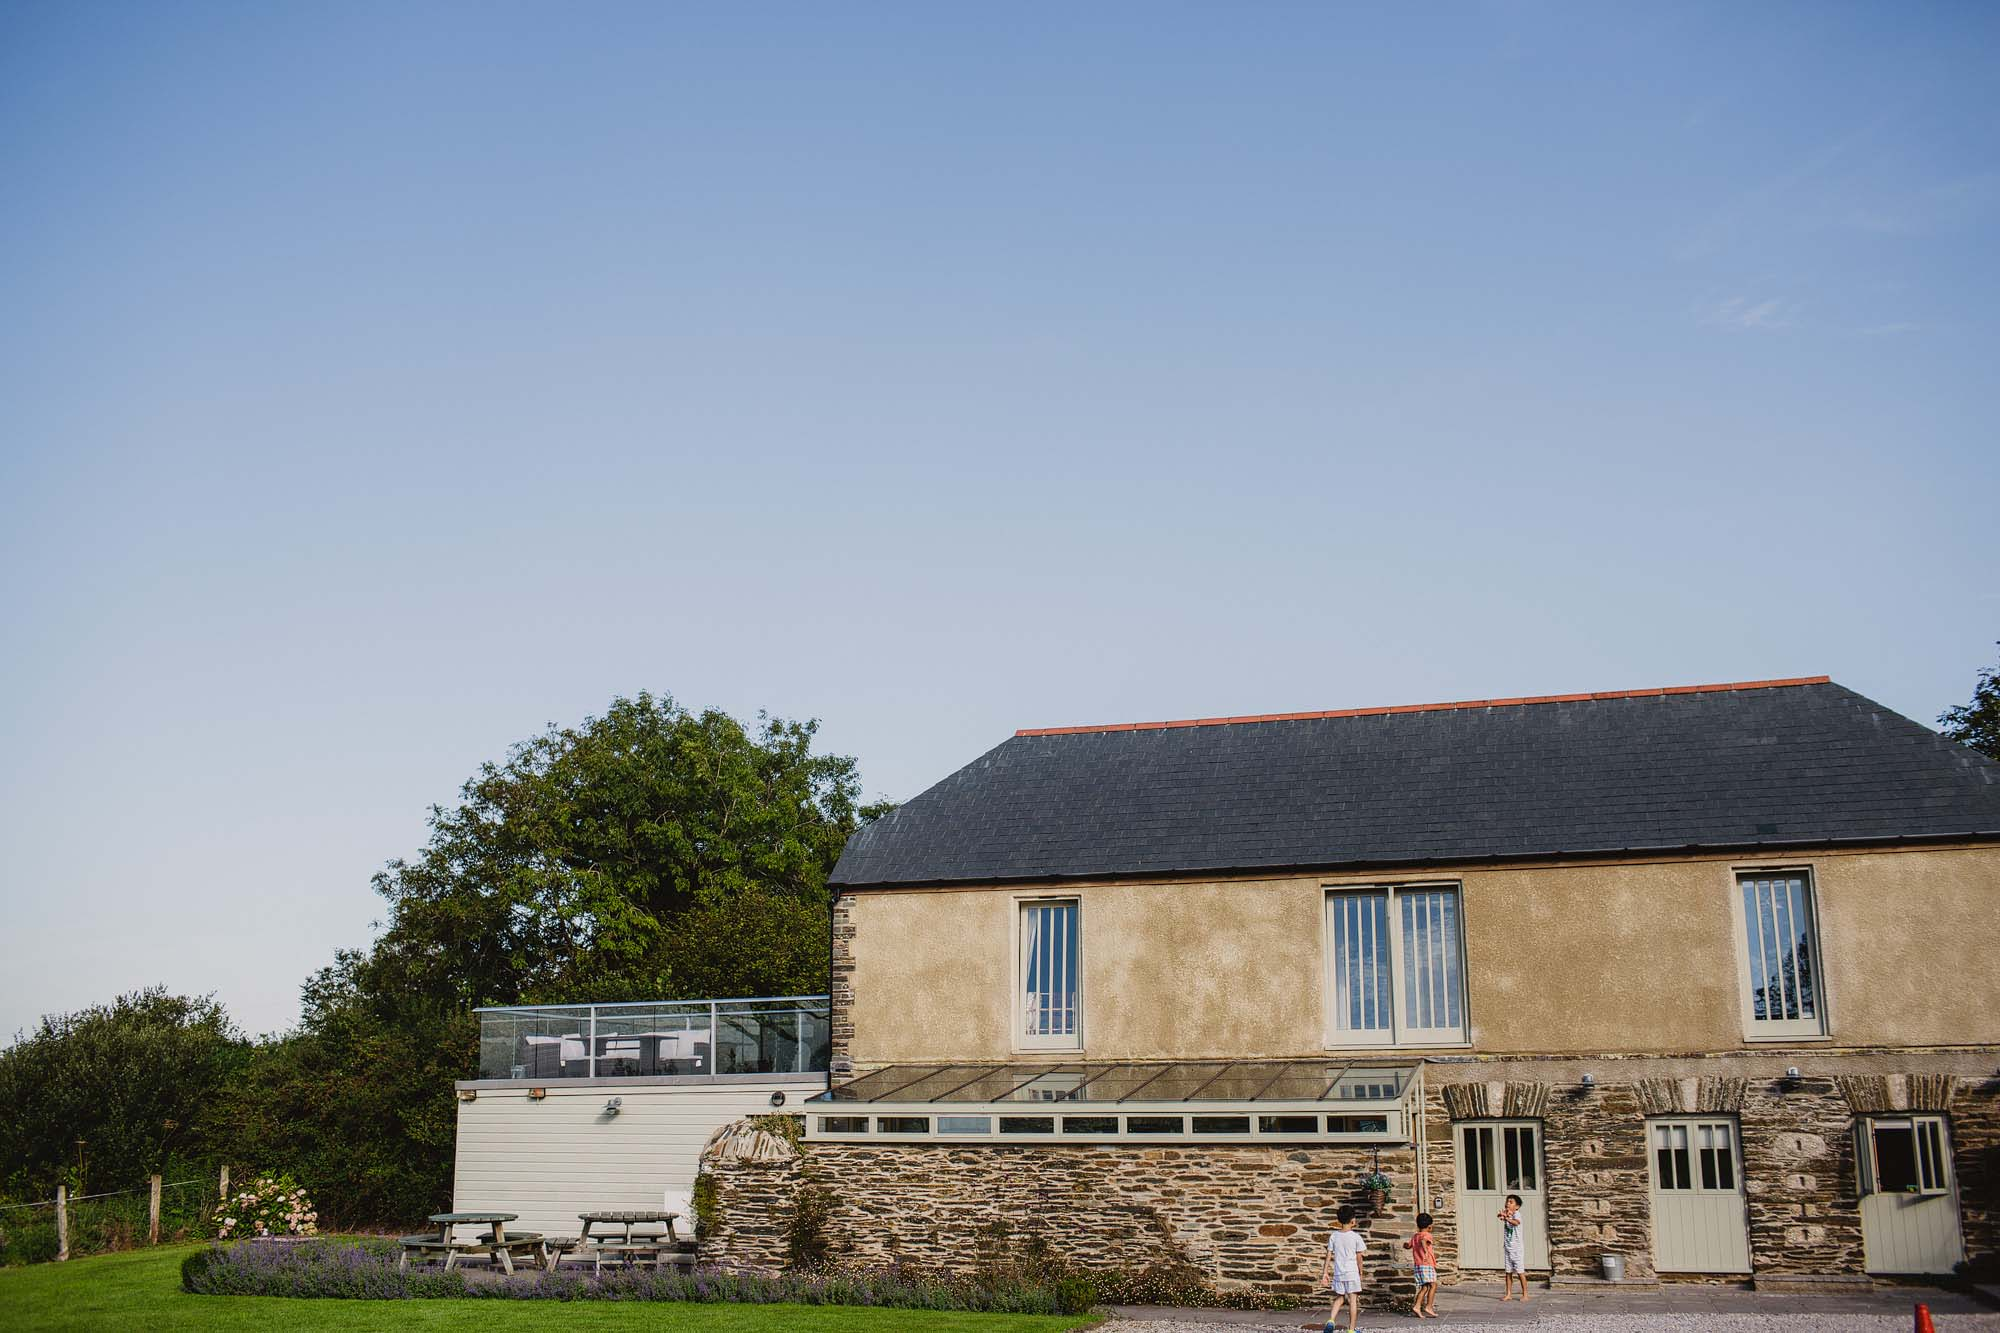 Shilstone wedding accommodation